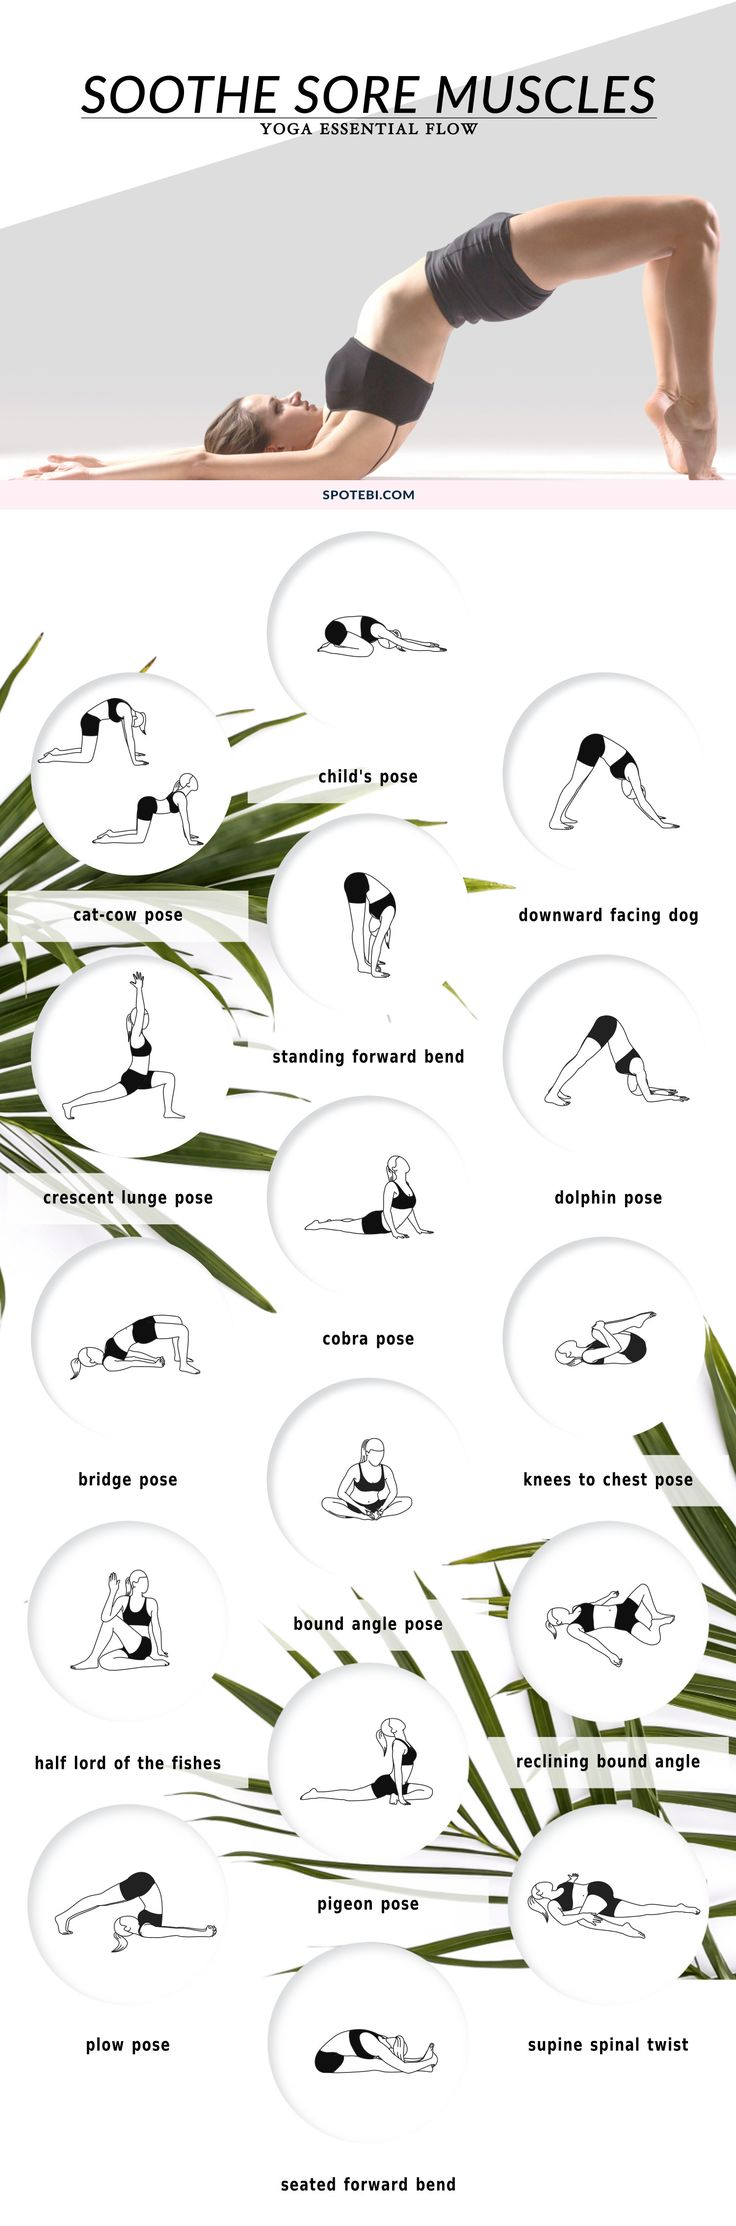 Having sore muscles after an intense workout is very common, especially for beginners who are just starting out. This gentle and invigorating yoga sequence will help you ease post-workout muscle soreness and increase your mobility and flexibility for futu